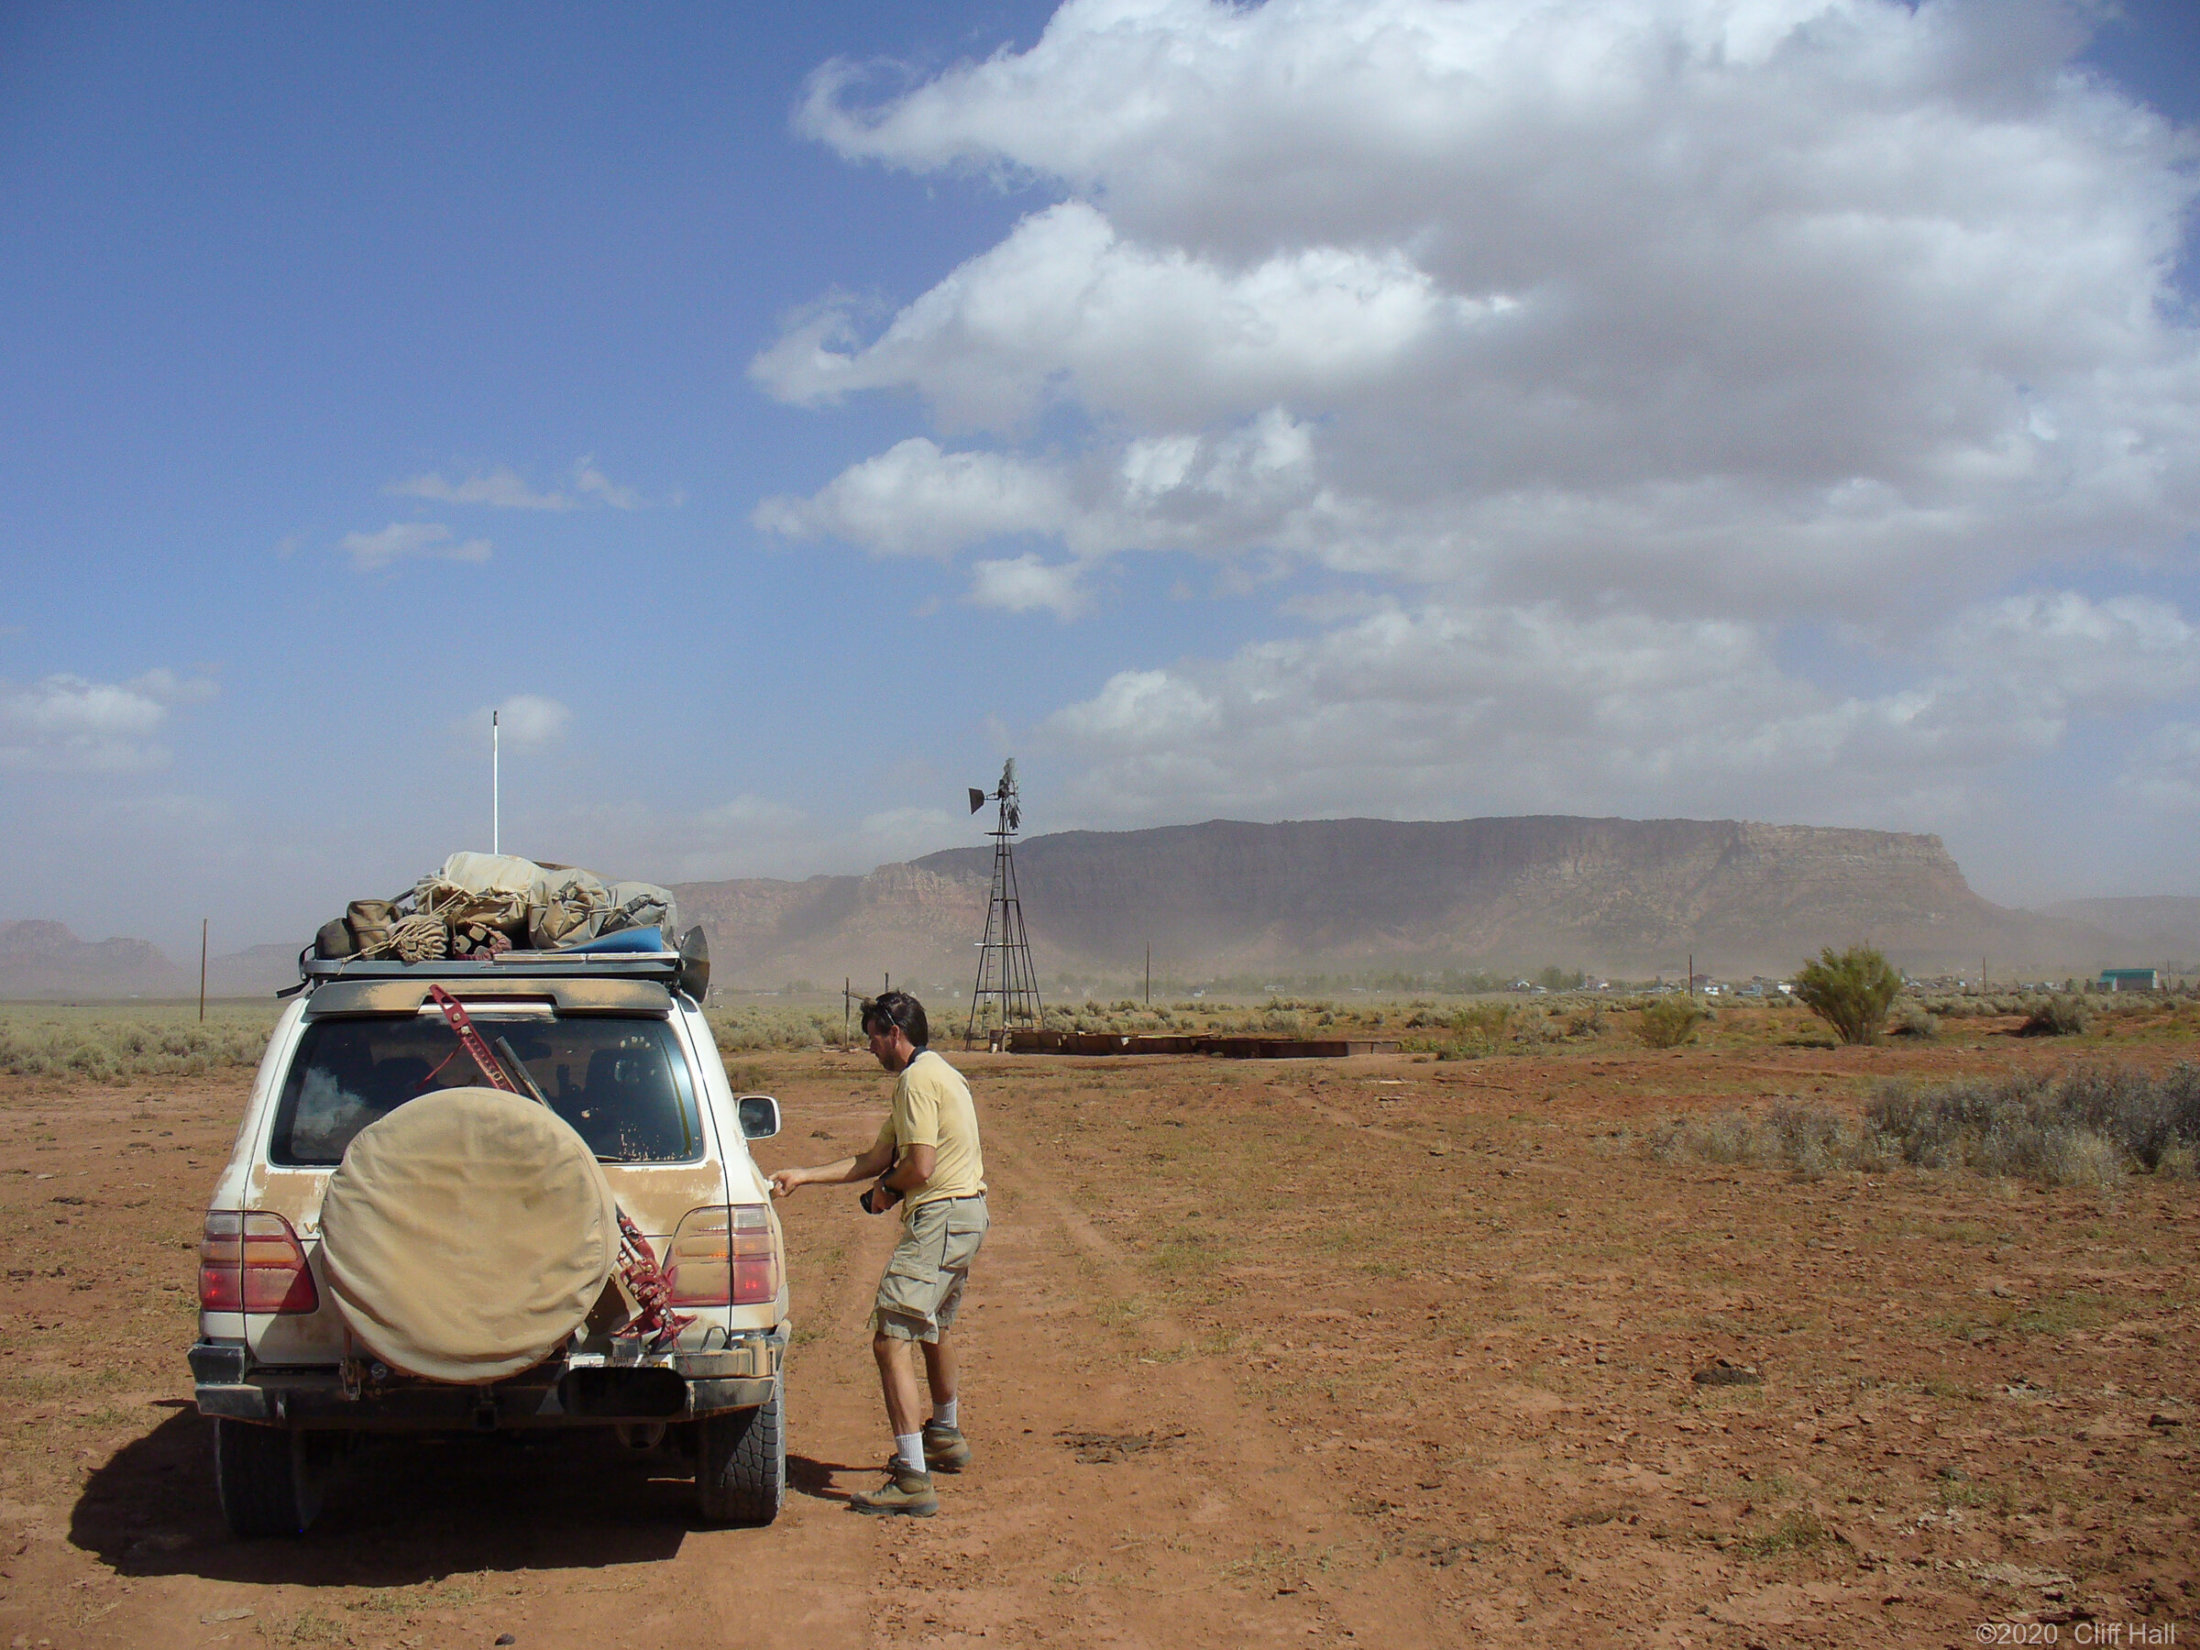 Steve in the blowing wind and a packed and dusty Land Cruiser